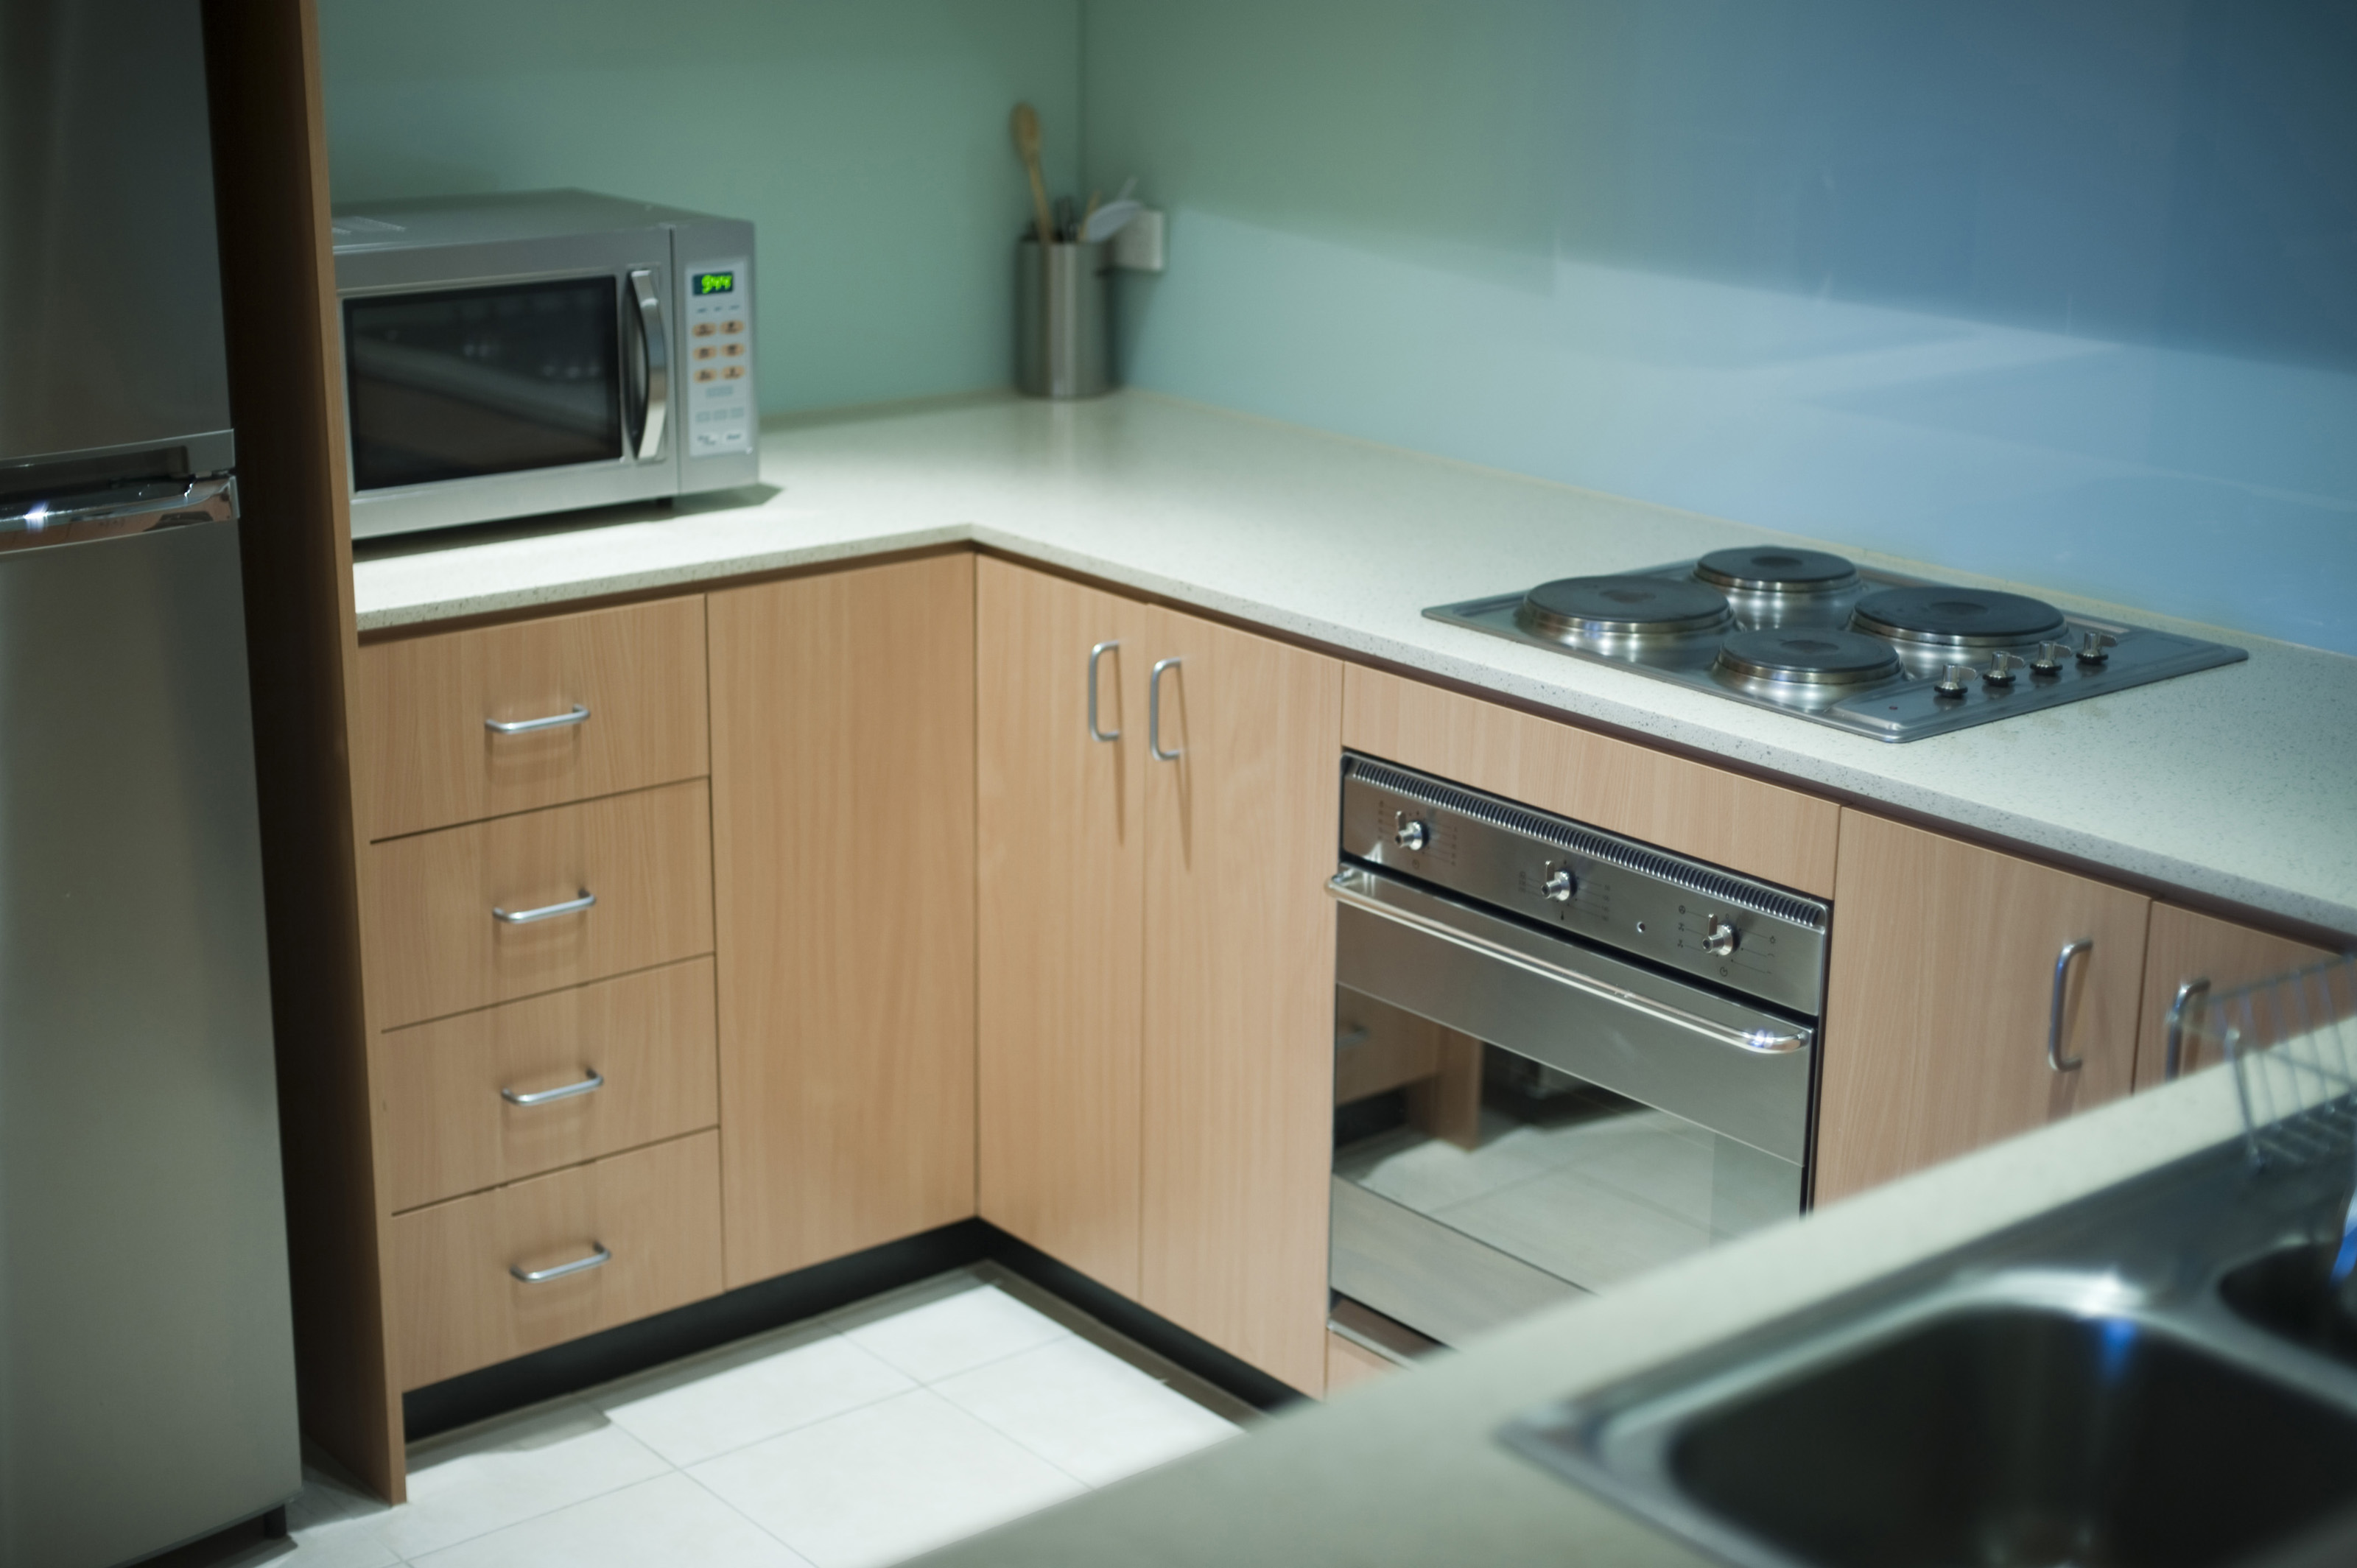 Simple Neat pact modern kitchen with a fridge undercounter stove and hob sink and microwave